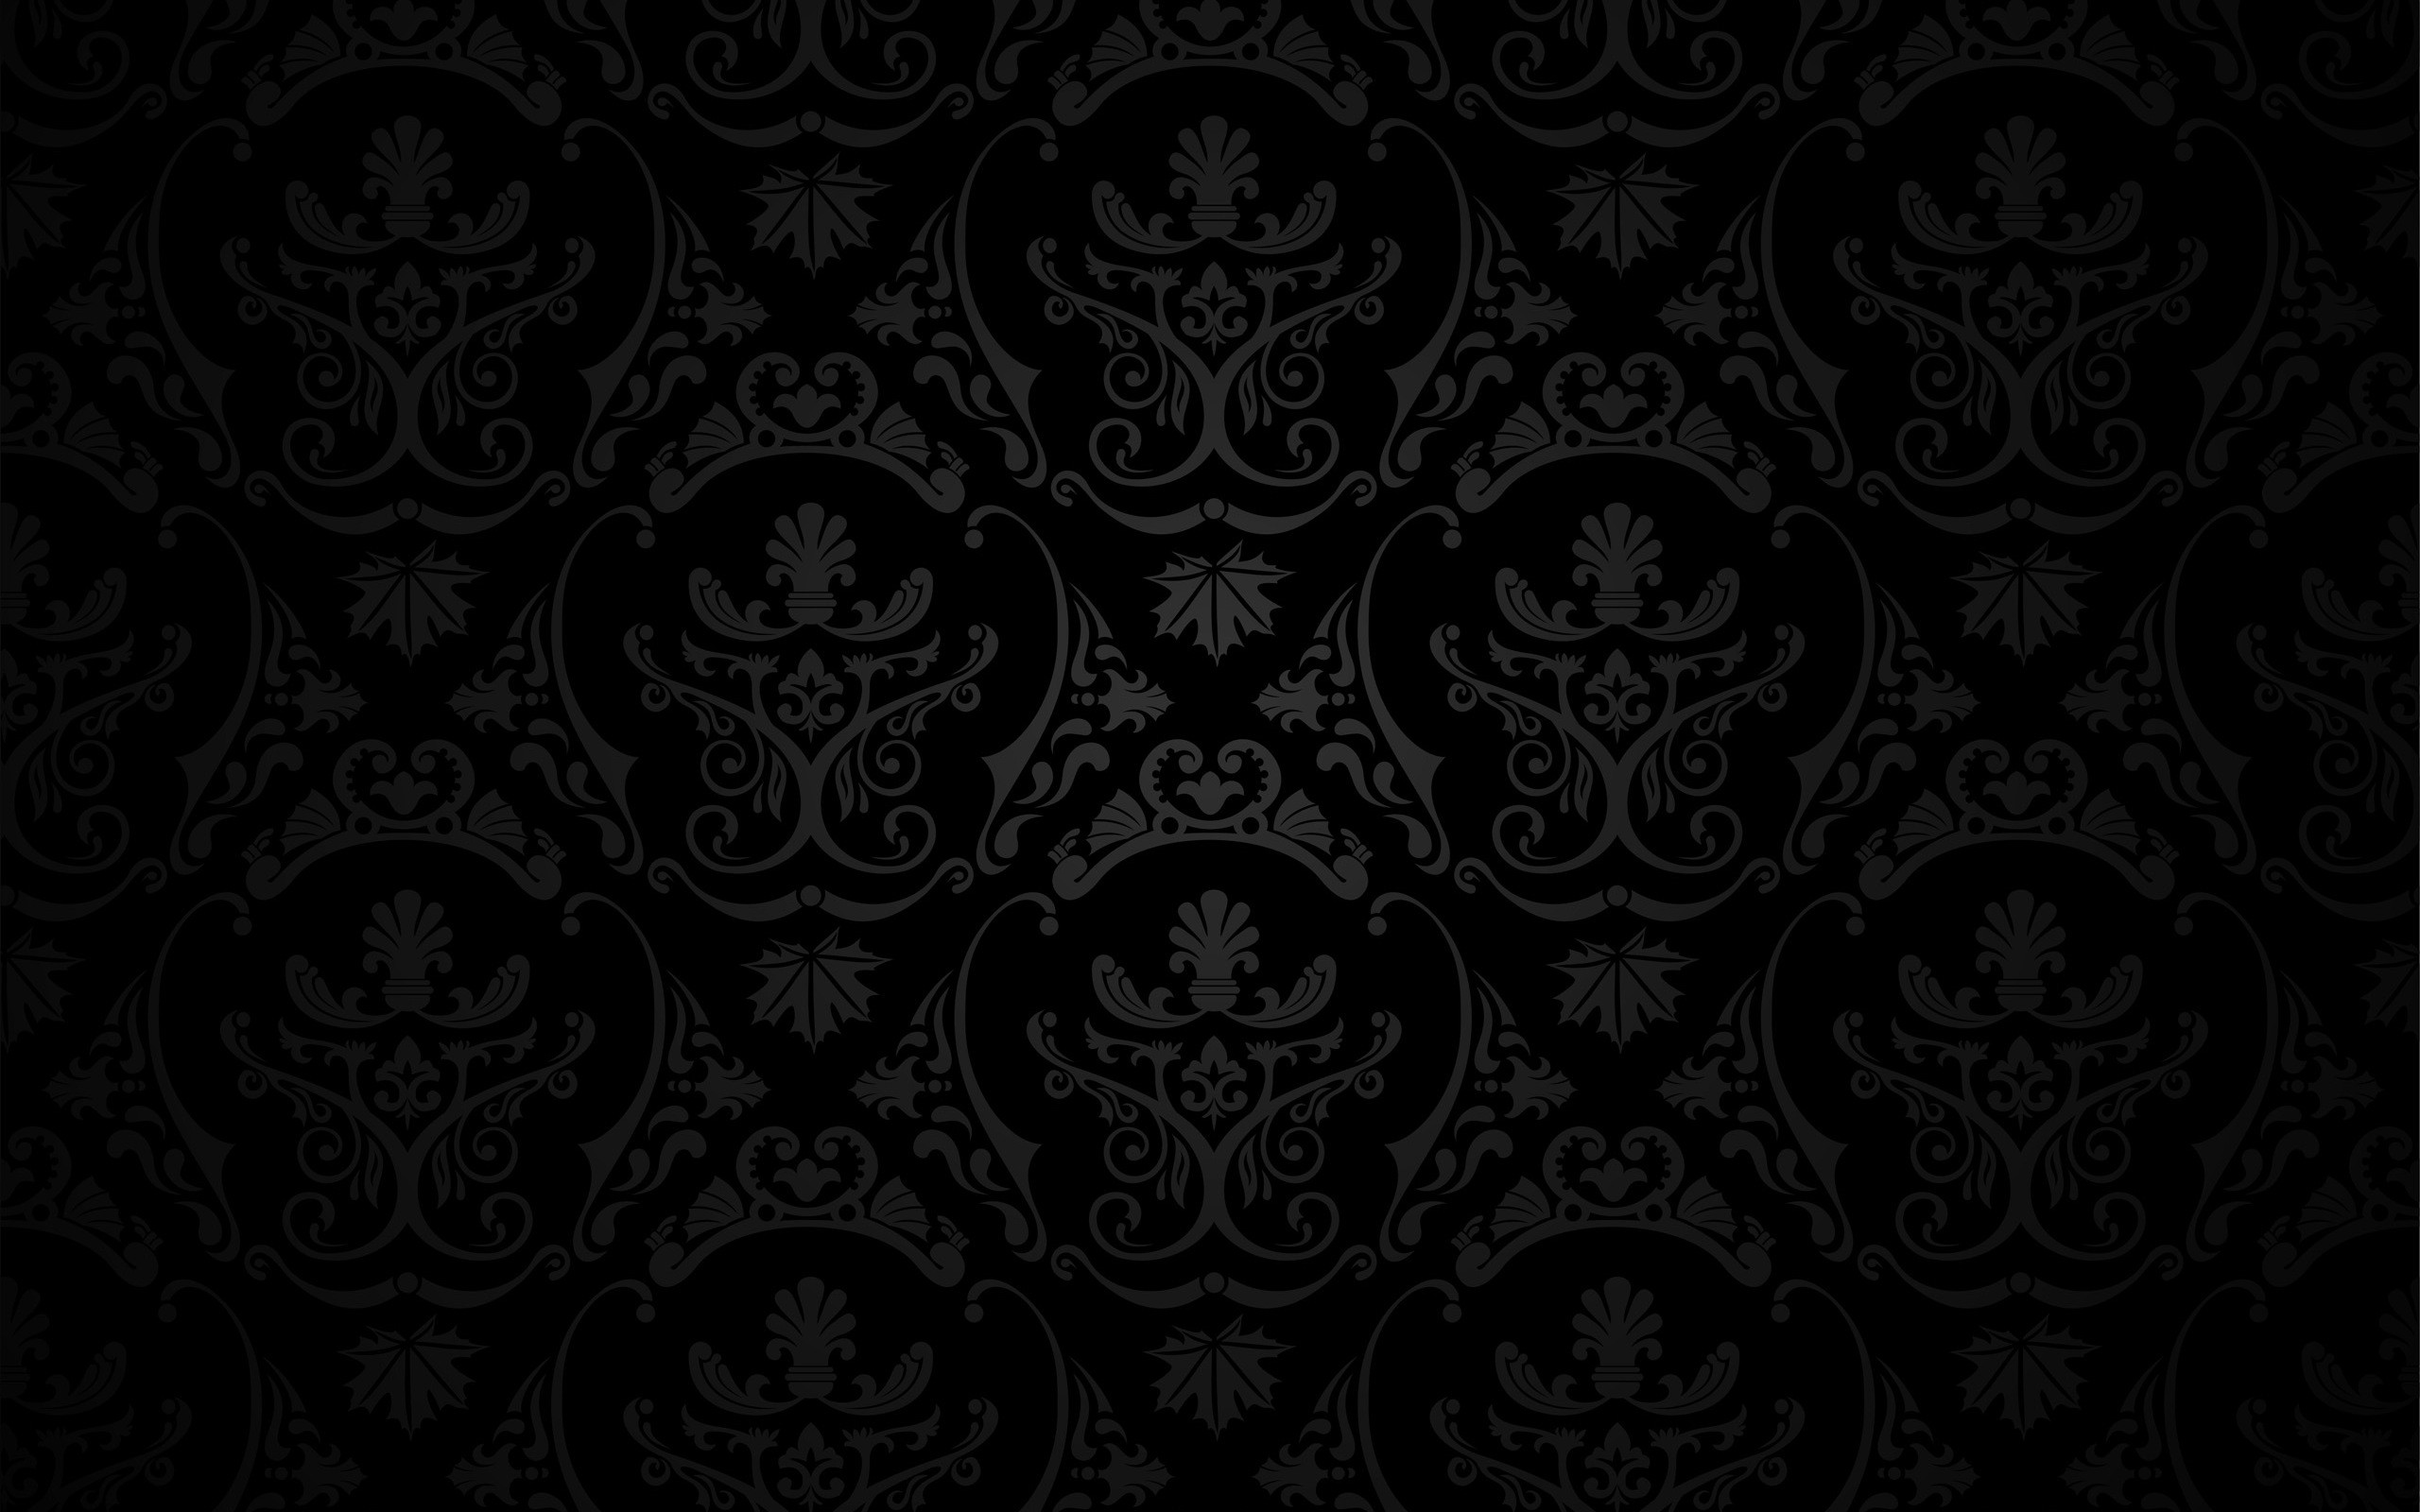 Black Wallpaper Backgrounds Wallpapersafari